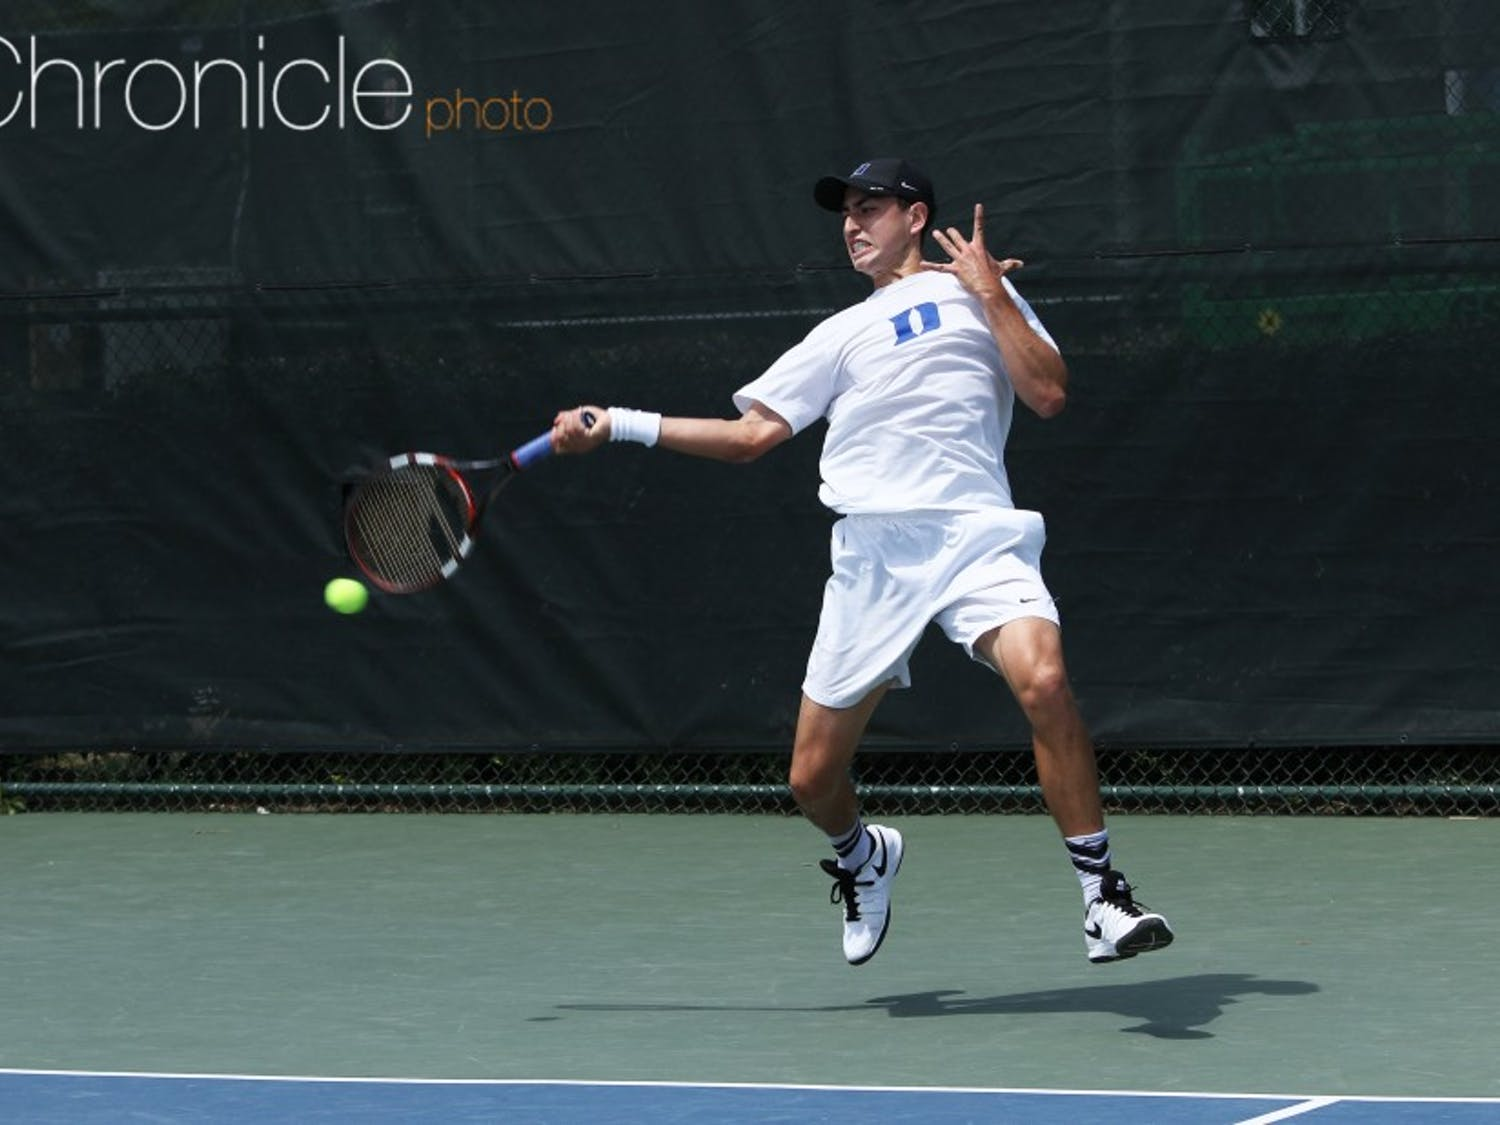 Junior Nicolas Alvarez will make his Duke season debut against some of the top singles players in the country.